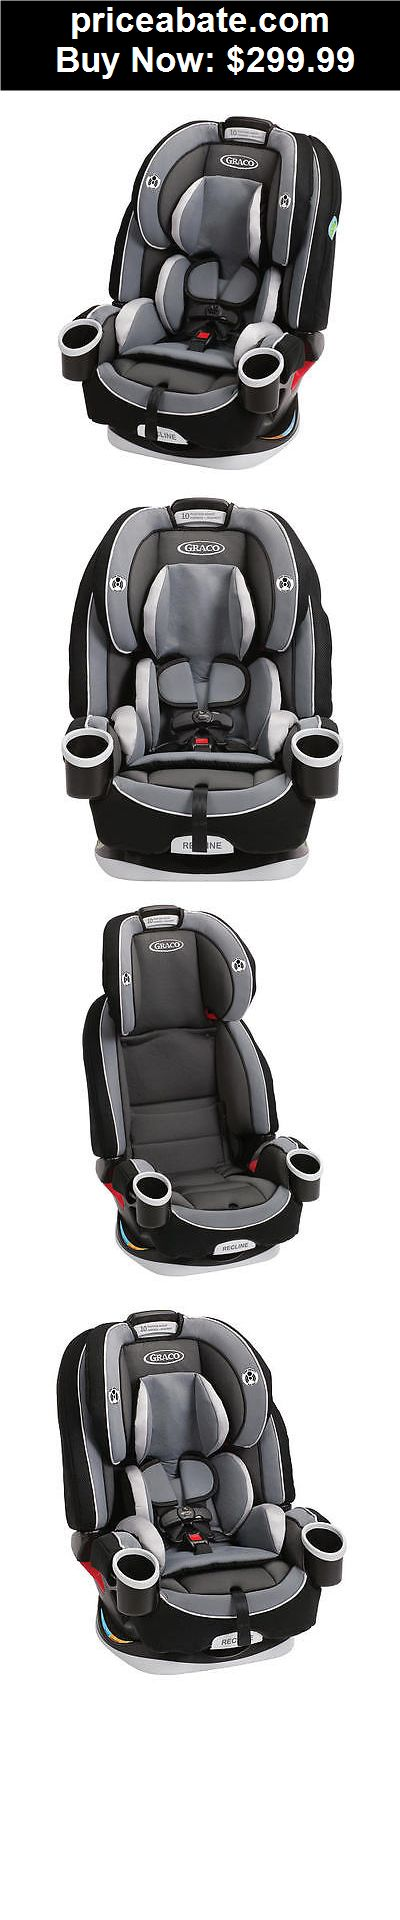 http://www.largesttoystore.com/category/convertible-car-seat/ Baby: Graco 4Ever All-in-One Convertible Car Seat - Cameron - BUY IT NOW ONLY $299.99